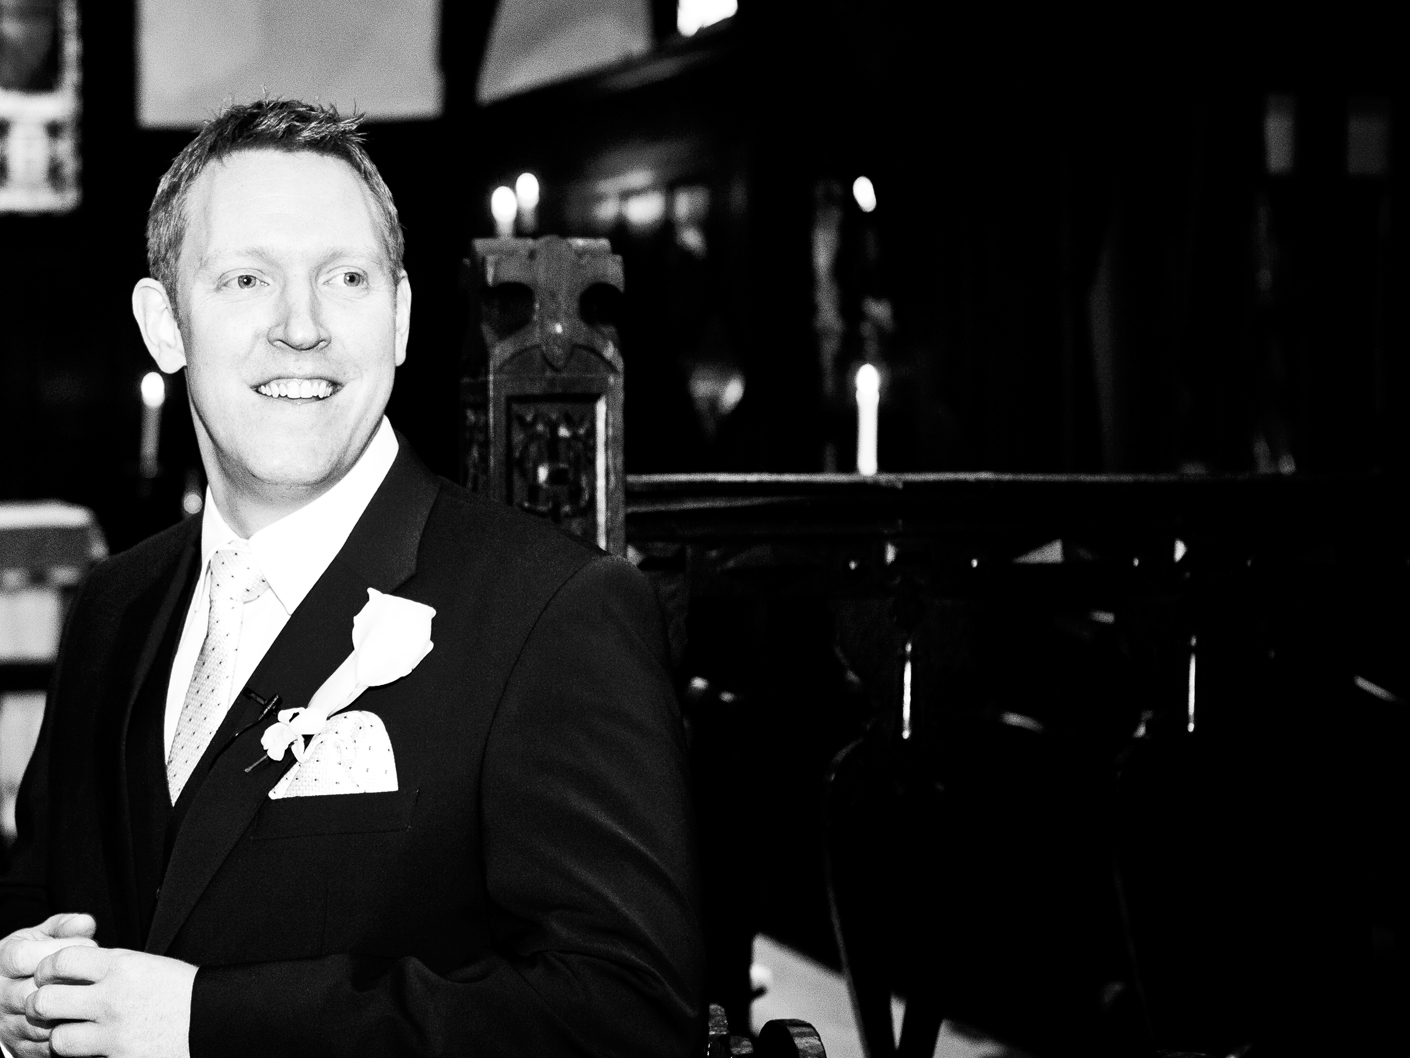 wedding-photography-of-the-groom-at-the-cheshire-wedding-ceremony